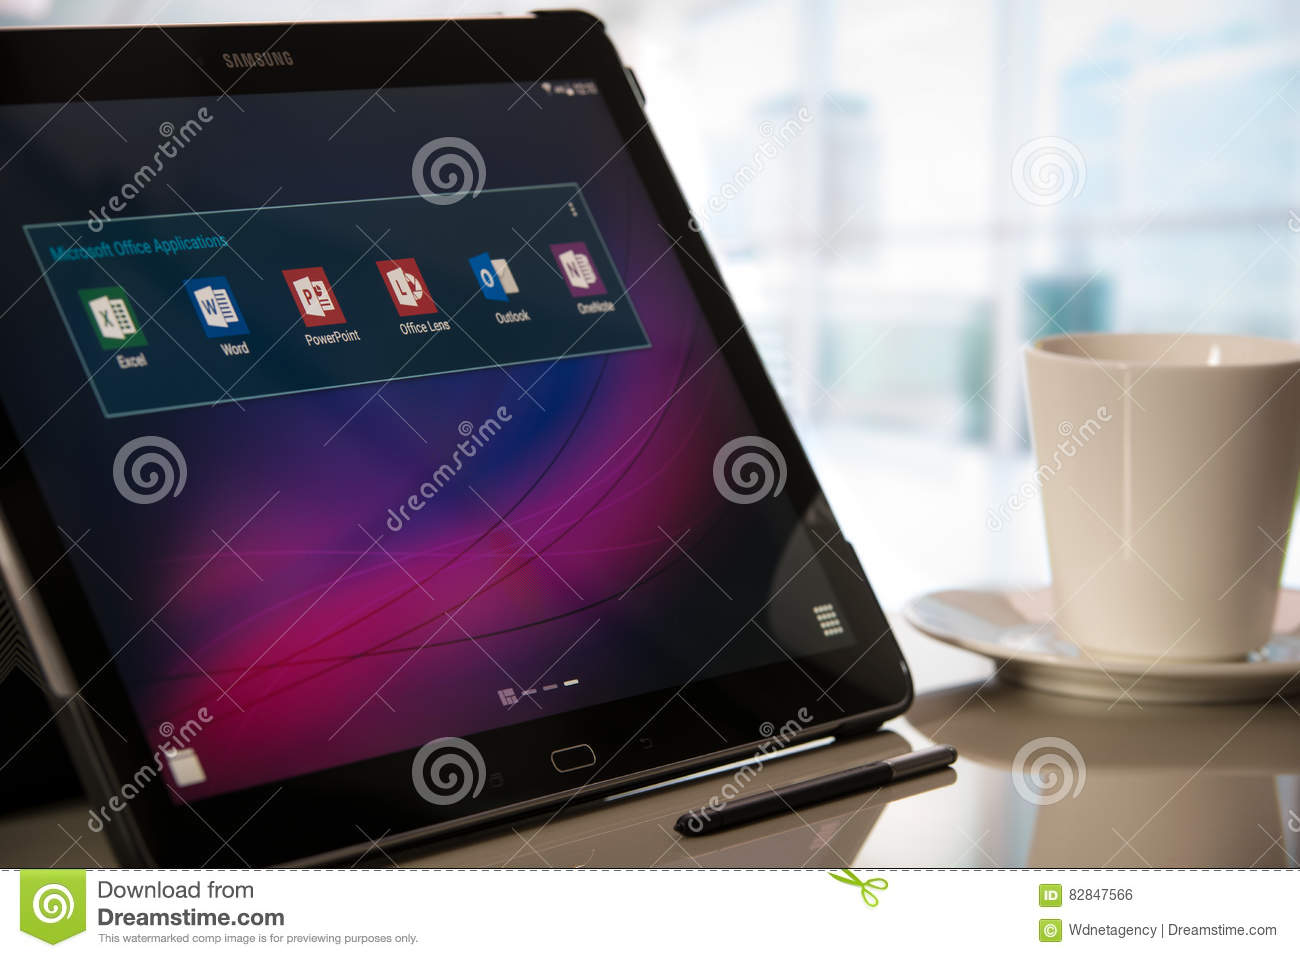 Microsoft Office Applications On Samsung Tablet With Android